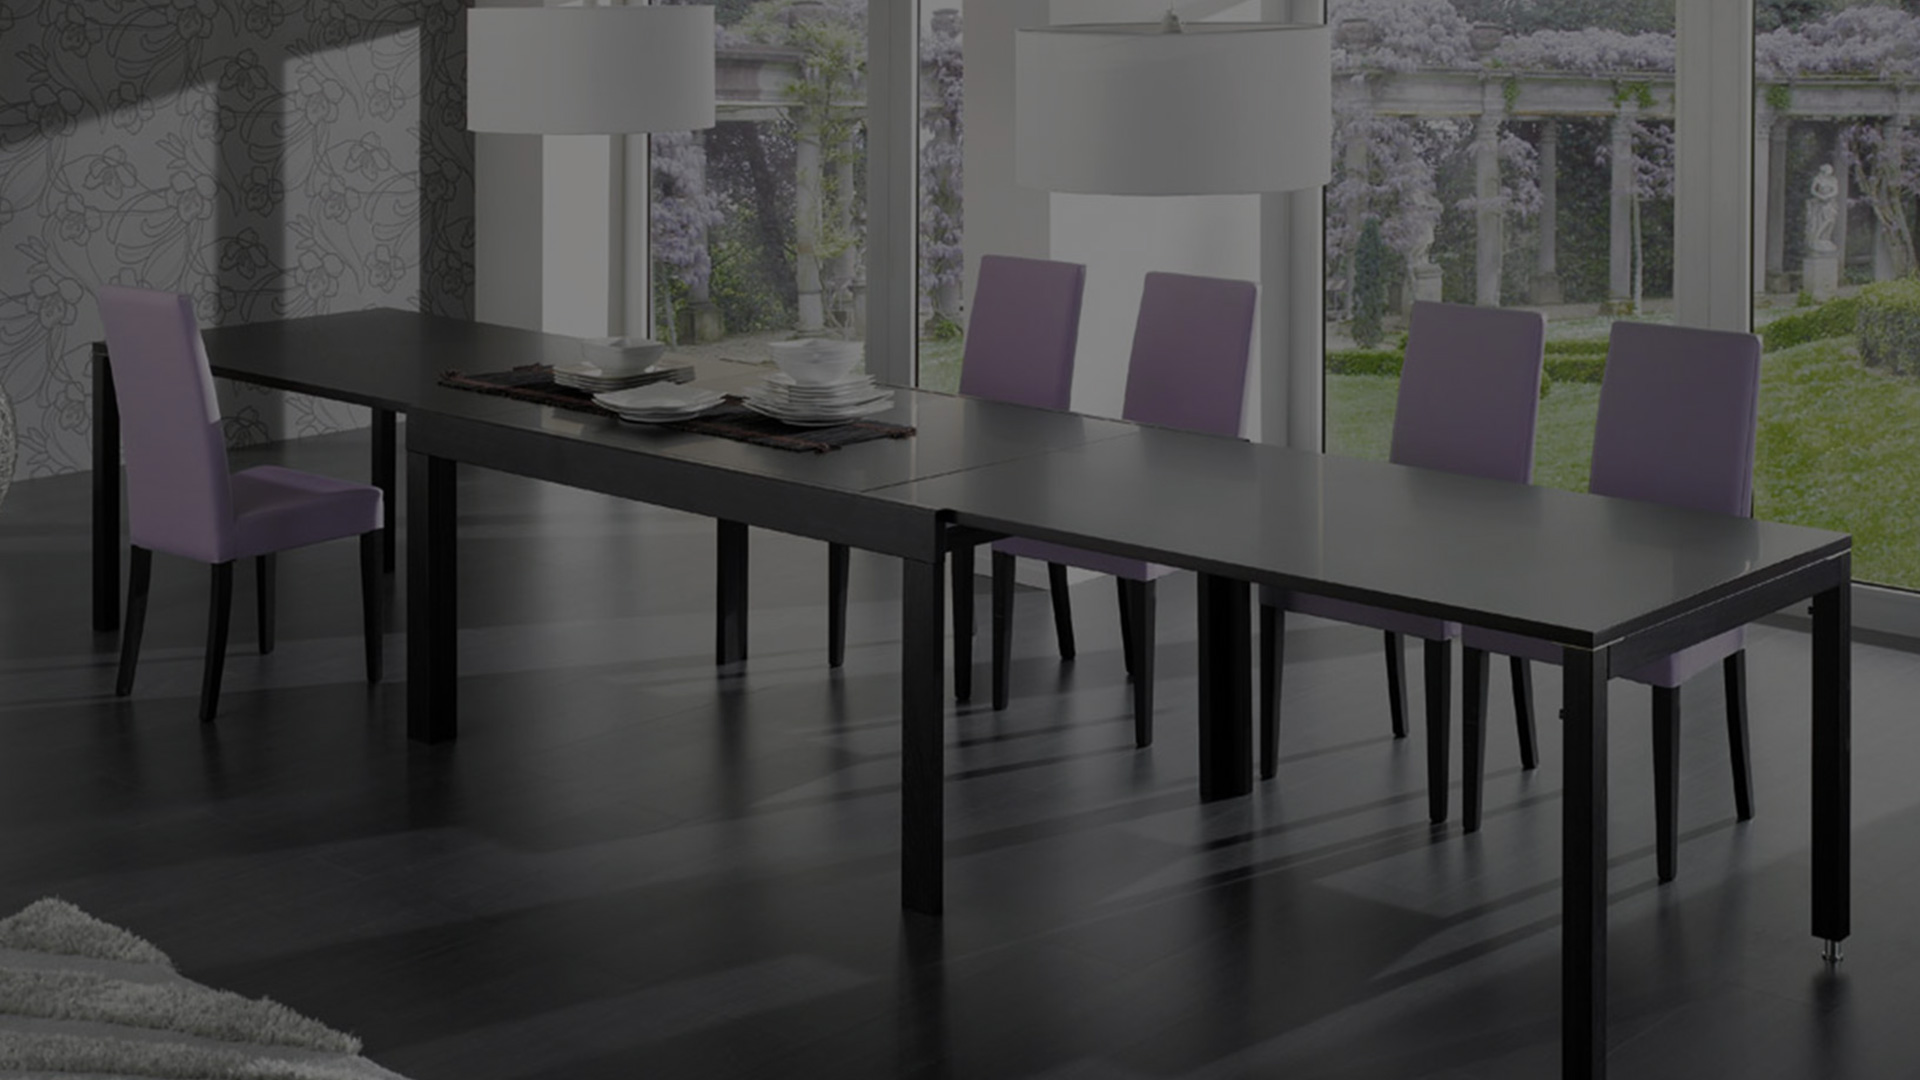 Charmant ... Stylish Dining Table Than Can Make Room For A Few More Guests, We Have  You Covered. Browse Our Catalog Of Office, Kitchen And Dining Furniture  Below.